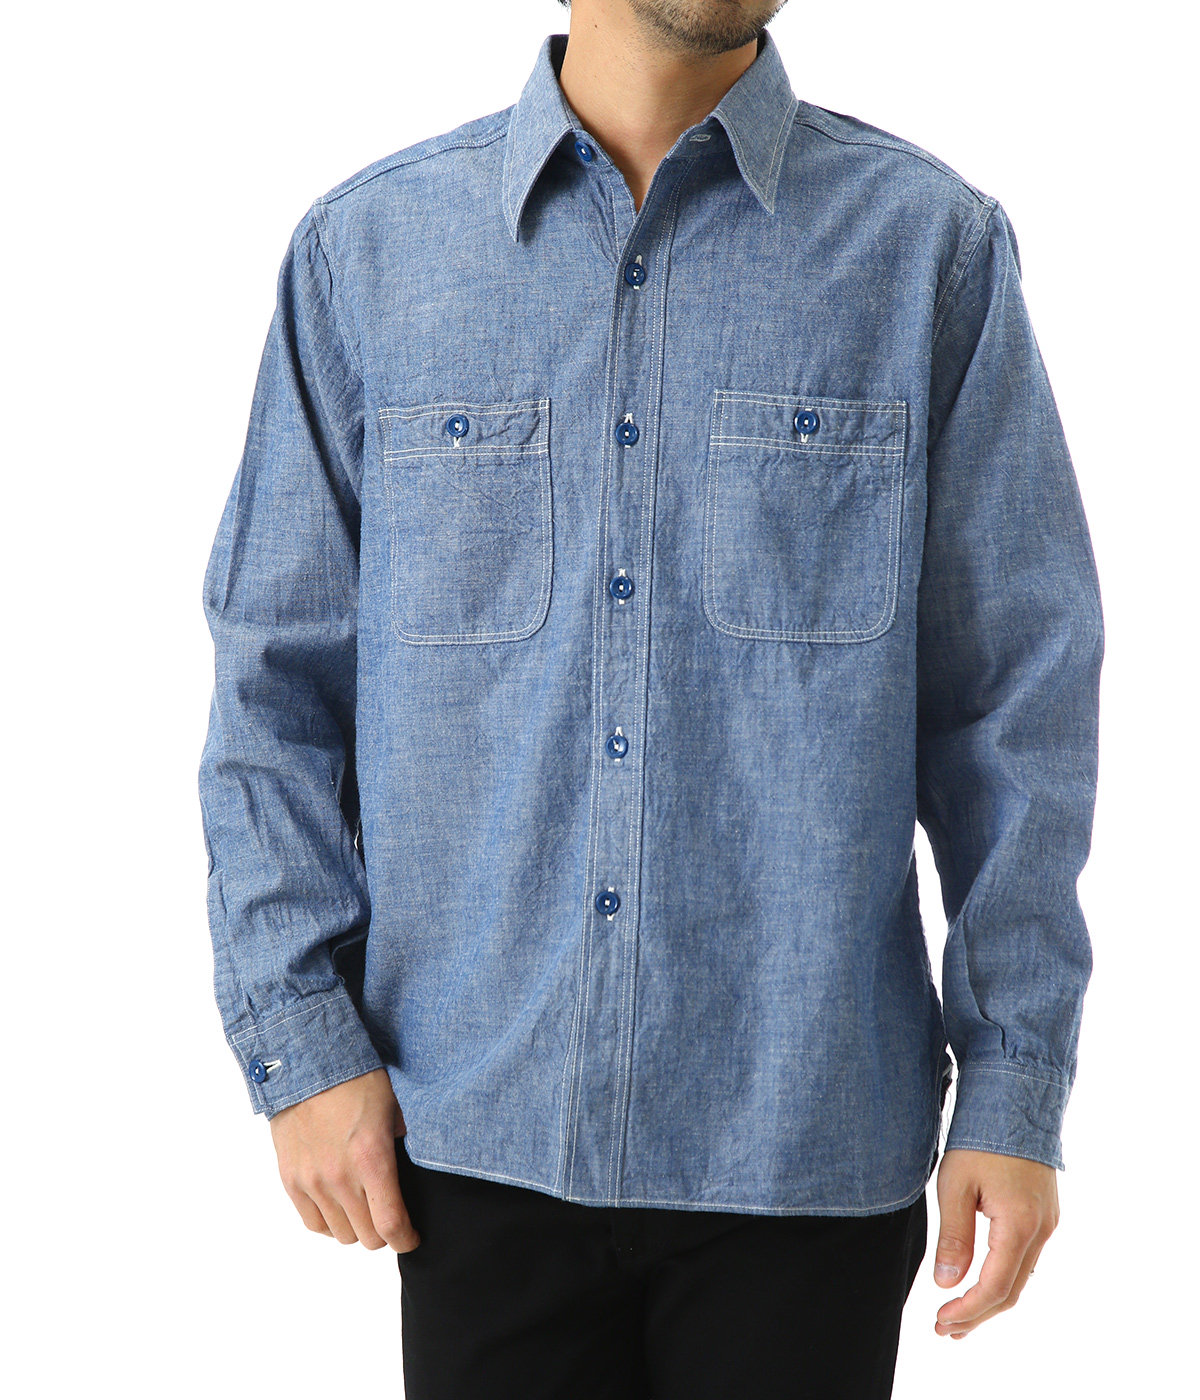 BLUE CHAMBRAY WORK SHIRT